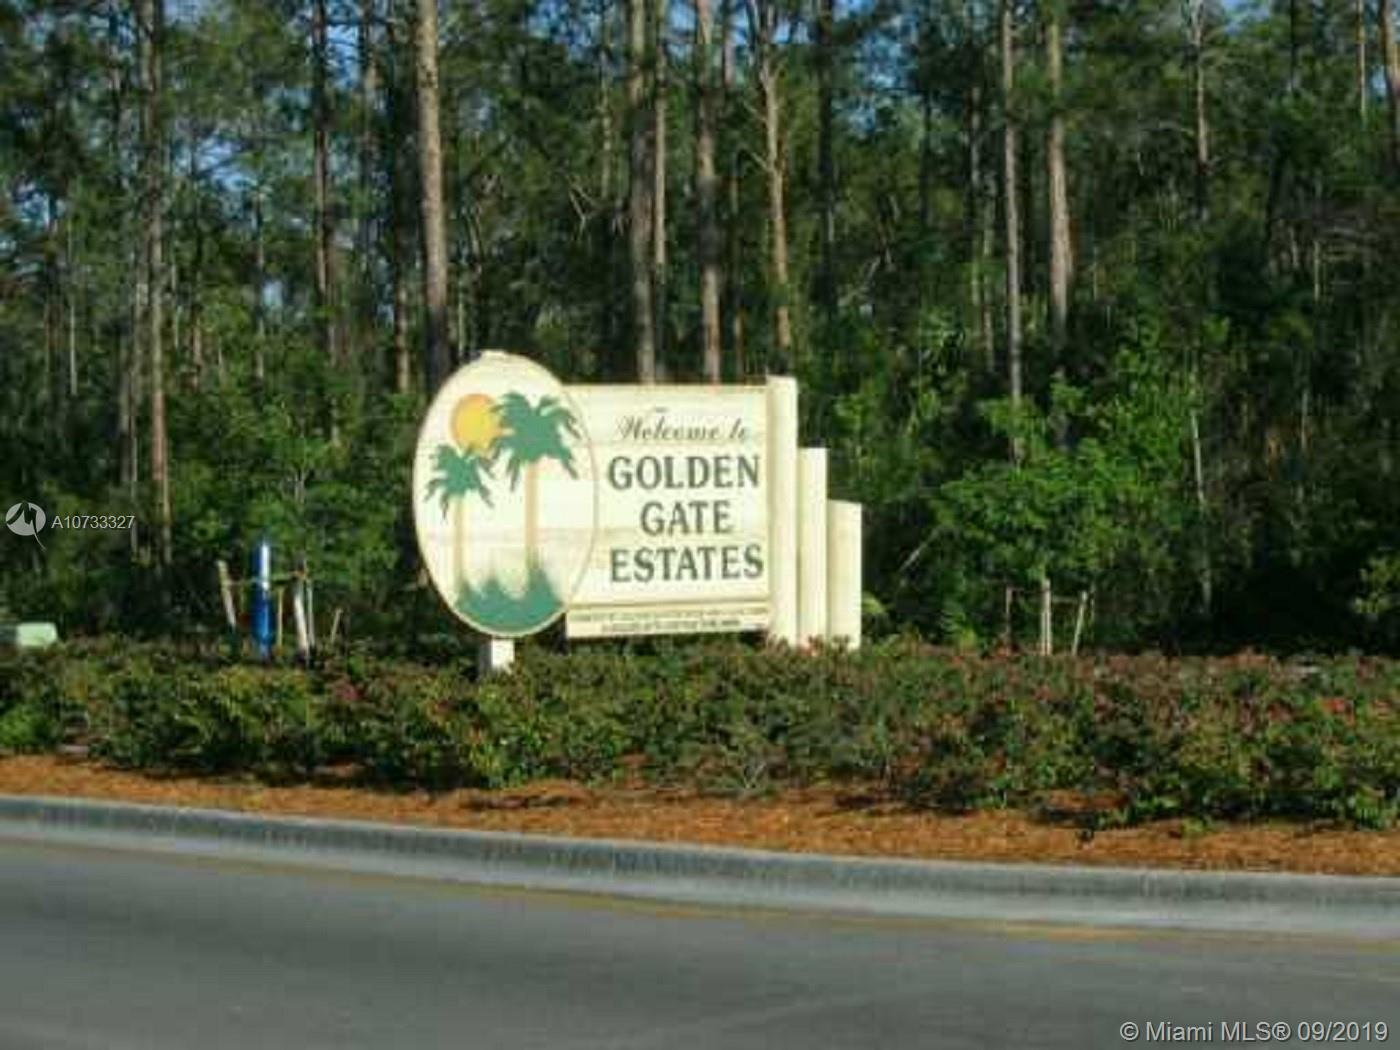 GOLDEN GAT W UNIT 10 TR 103 - Other City - In The State Of Florida, Florida